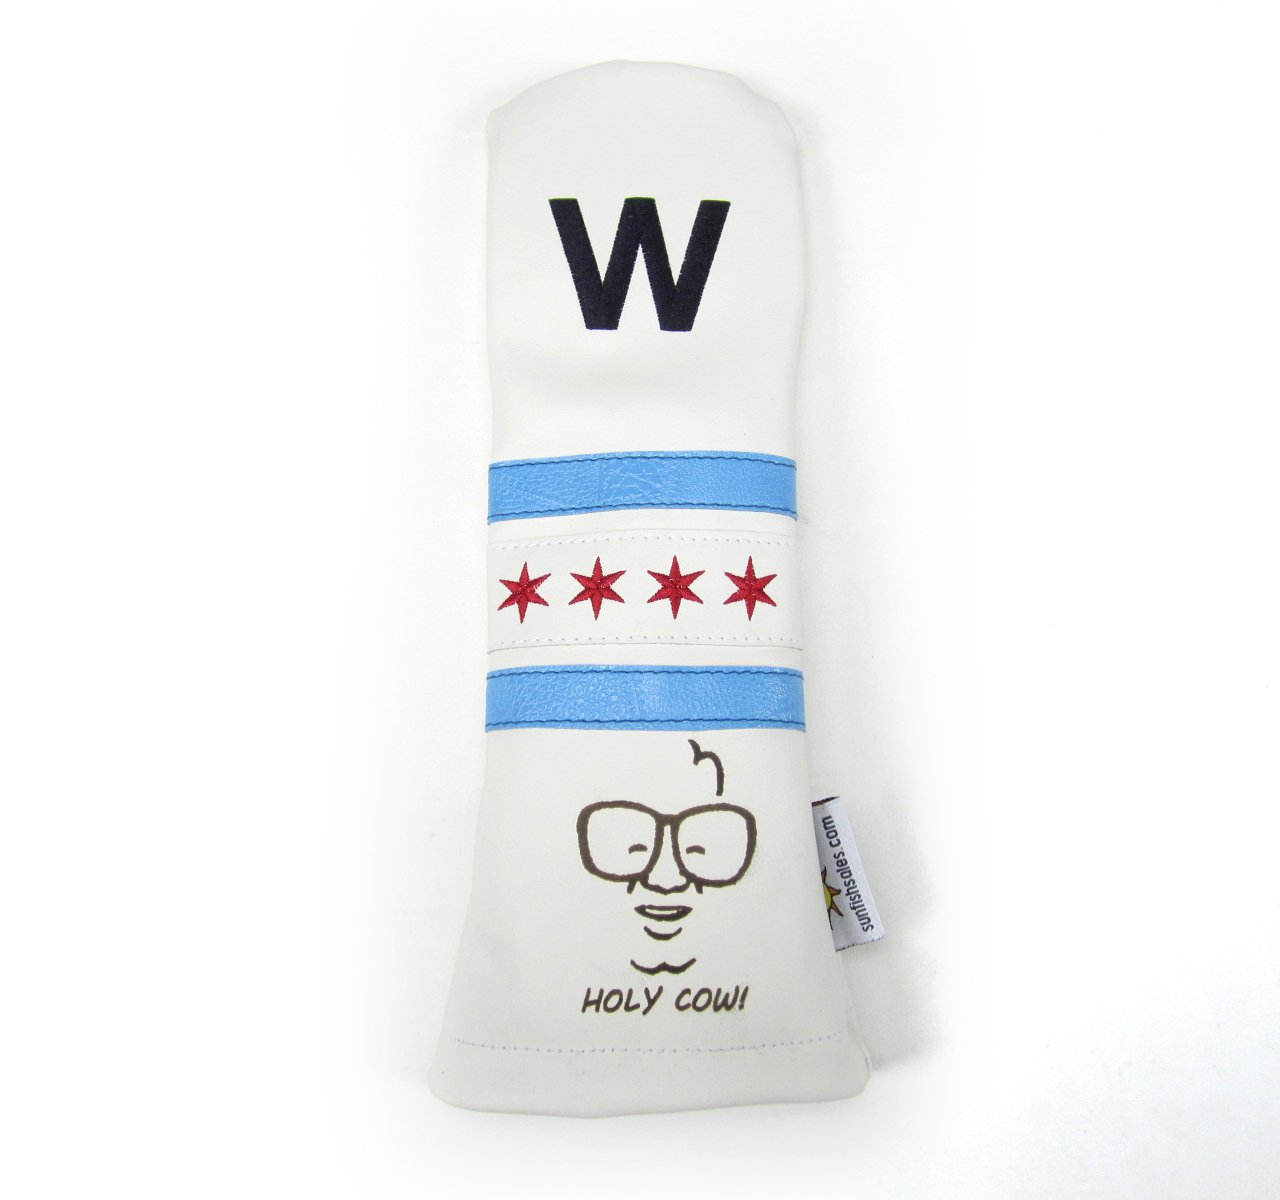 Sunfish Leather Fairway Golf Headcover Cubs Win Fly The Tshirts Shirts And Custom Clothing W Sports Outdoors